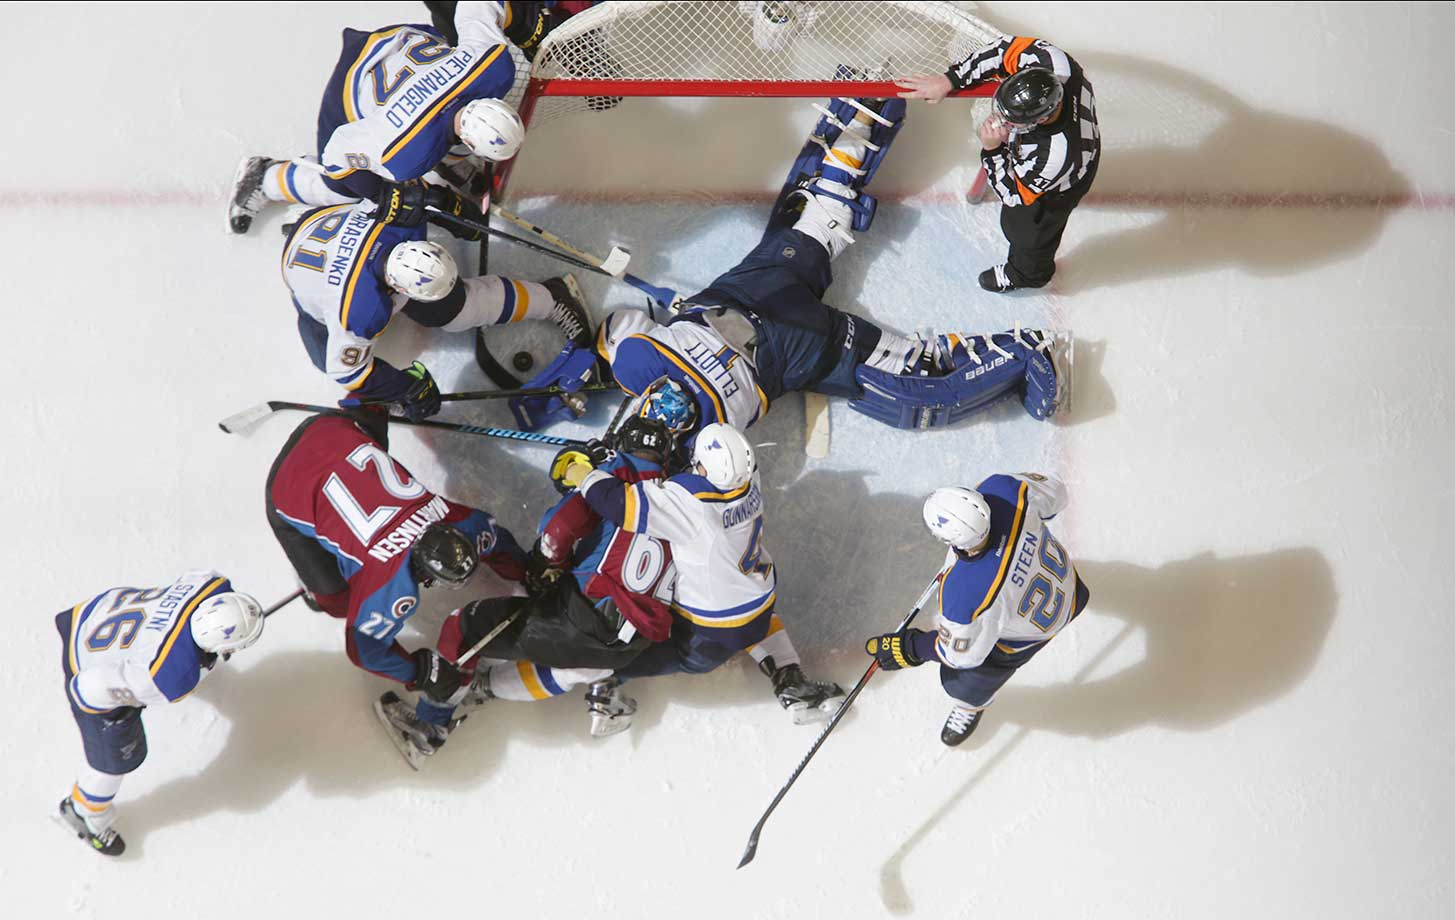 Members of the Colorado Avalanche and the St. Louis Blues surround the Blues net at the Pepsi Center in Denver.